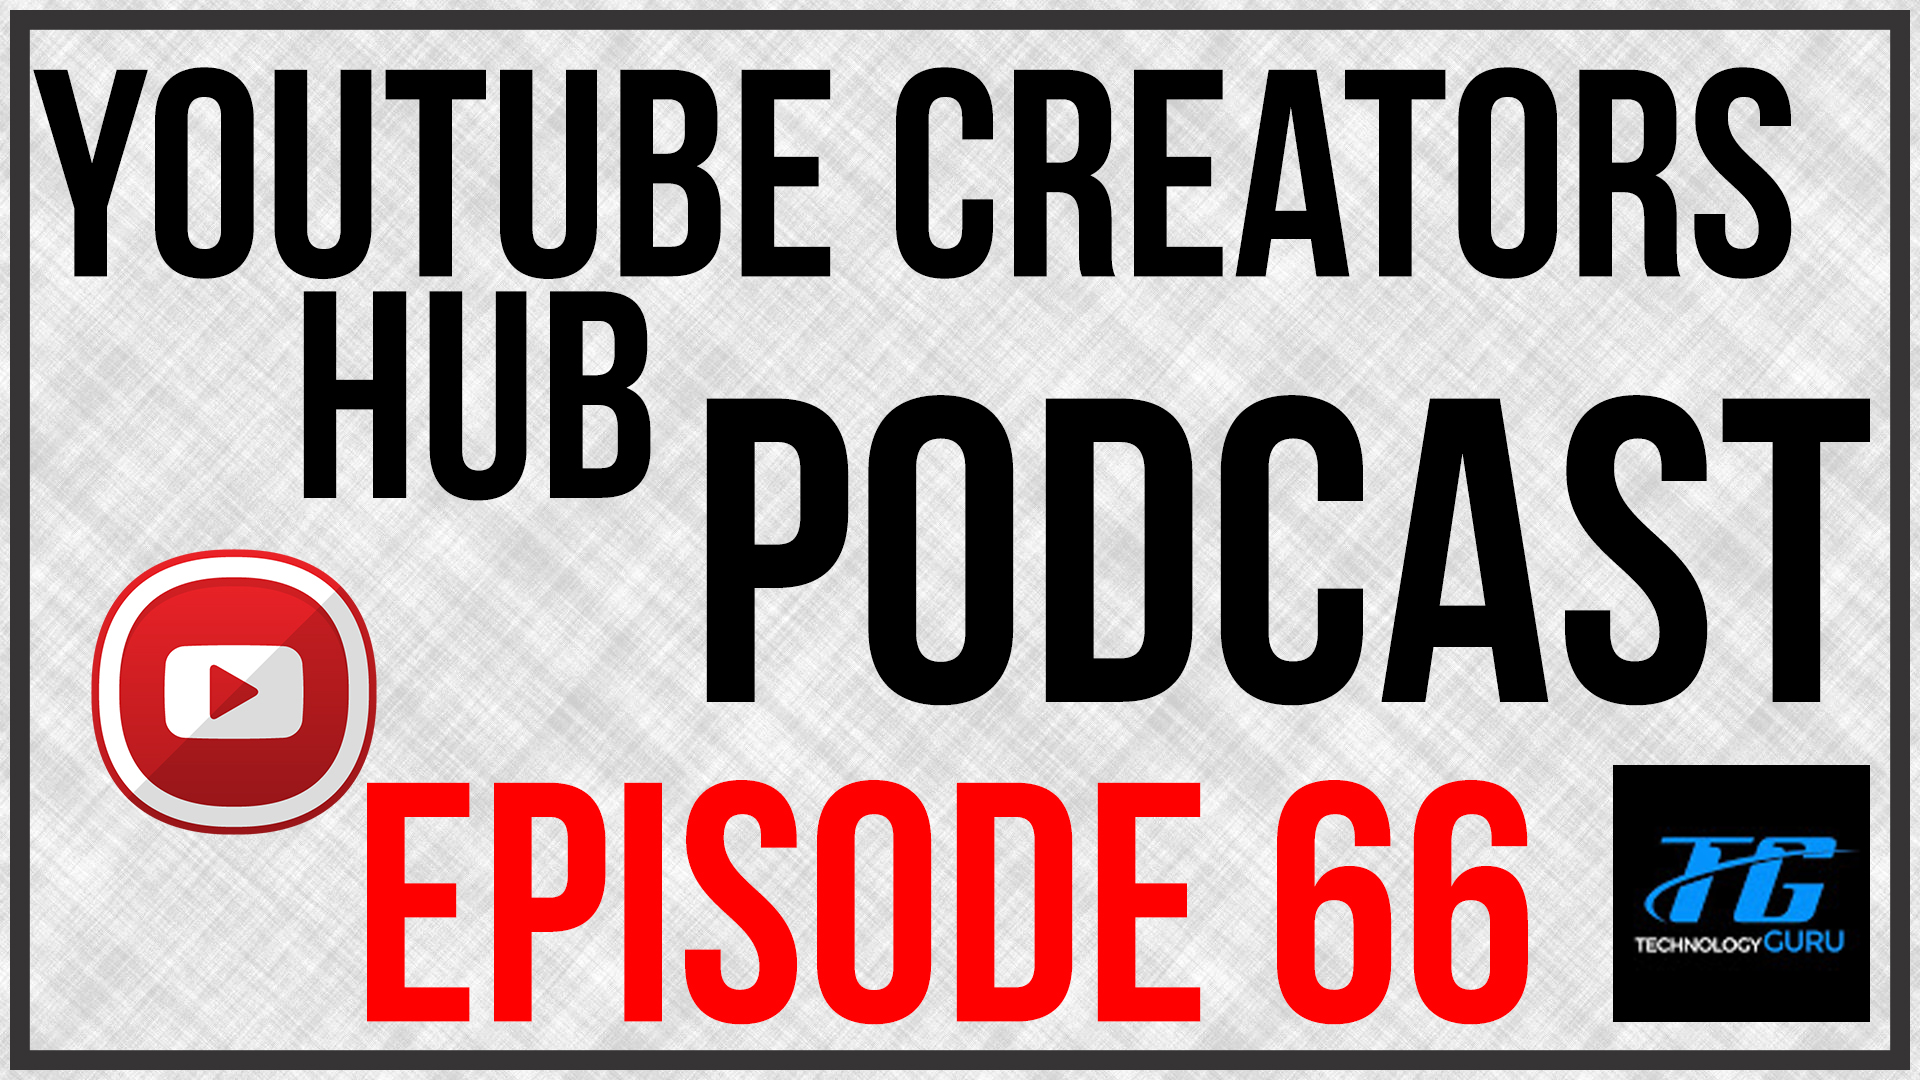 YouTube Creators Hub Podcast Episode 66